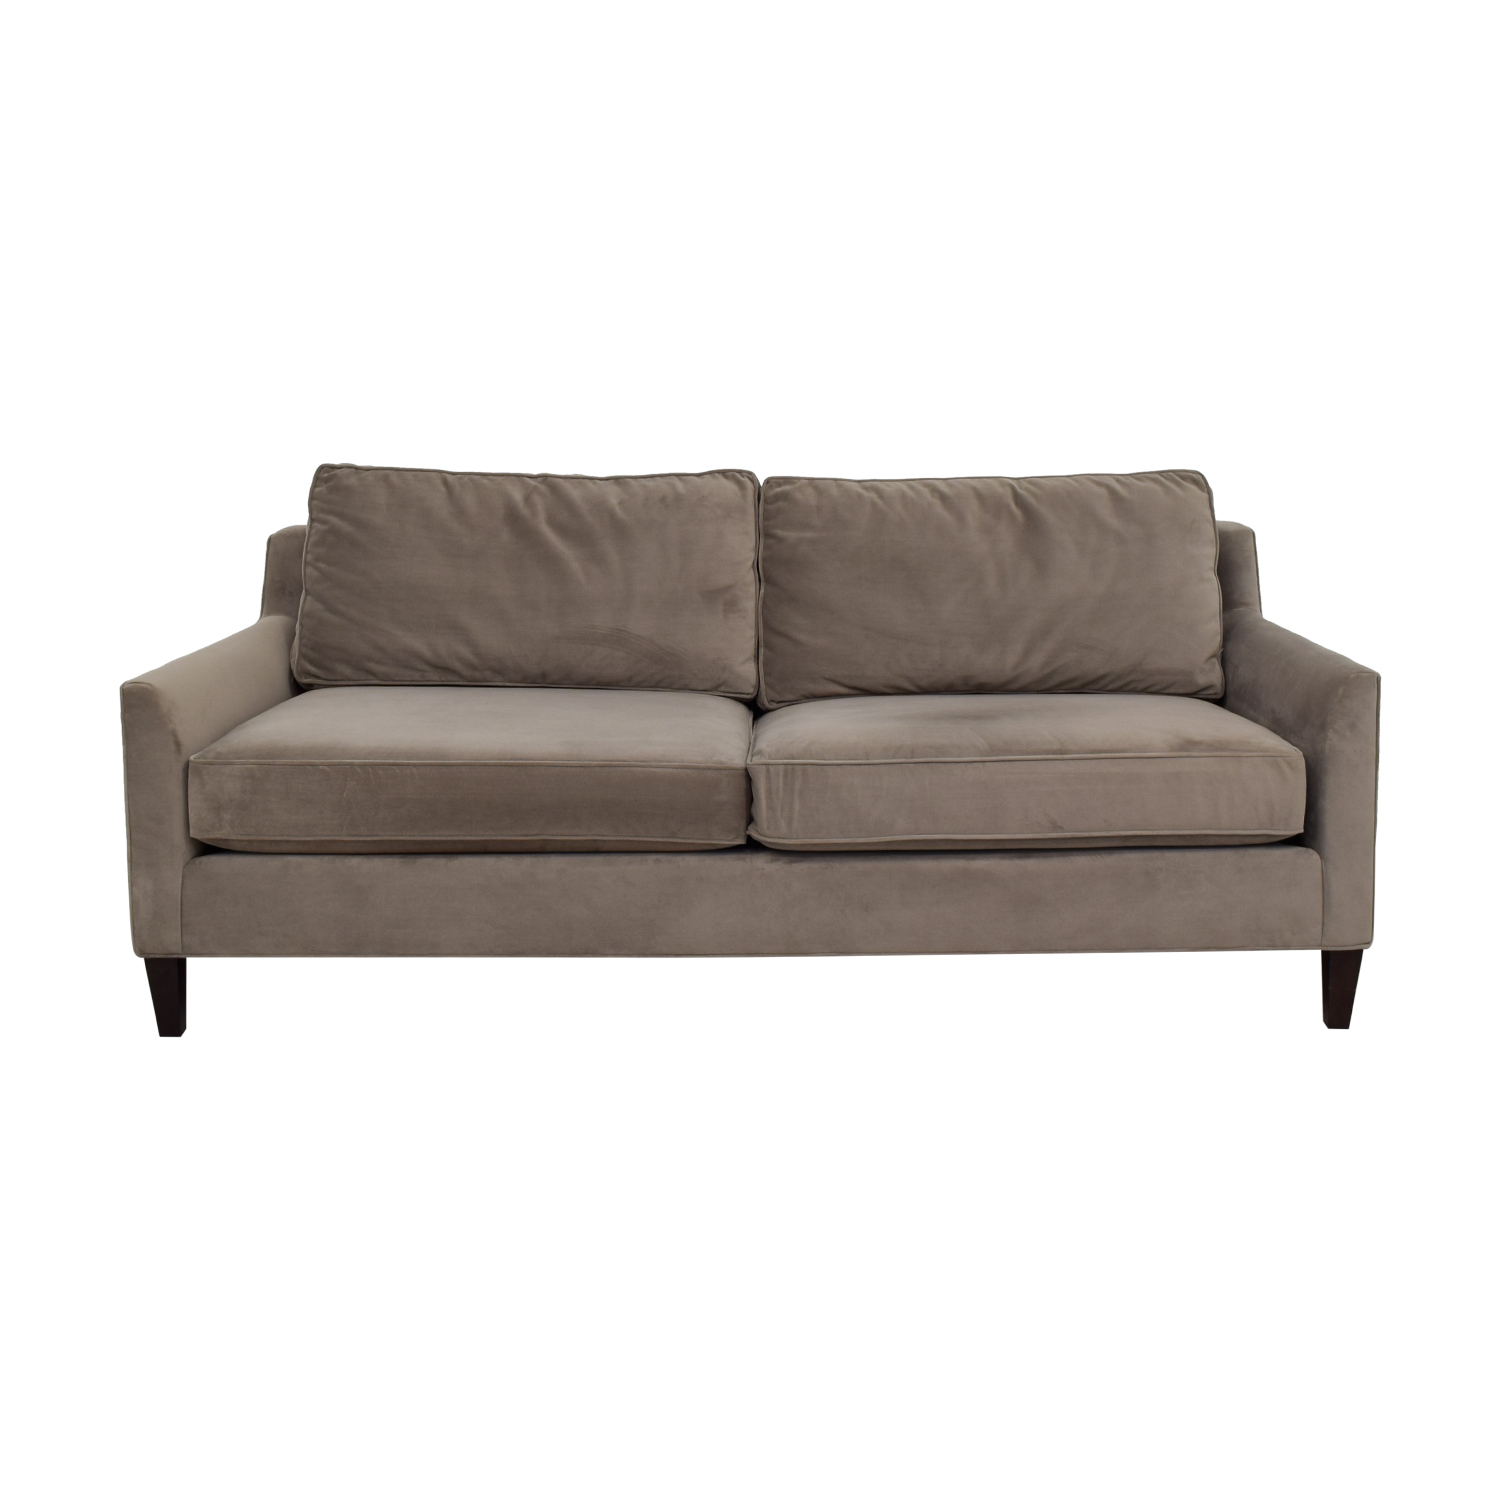 Pottery Barn Beverly Grey Two Cushion Sofa Clic Sofas